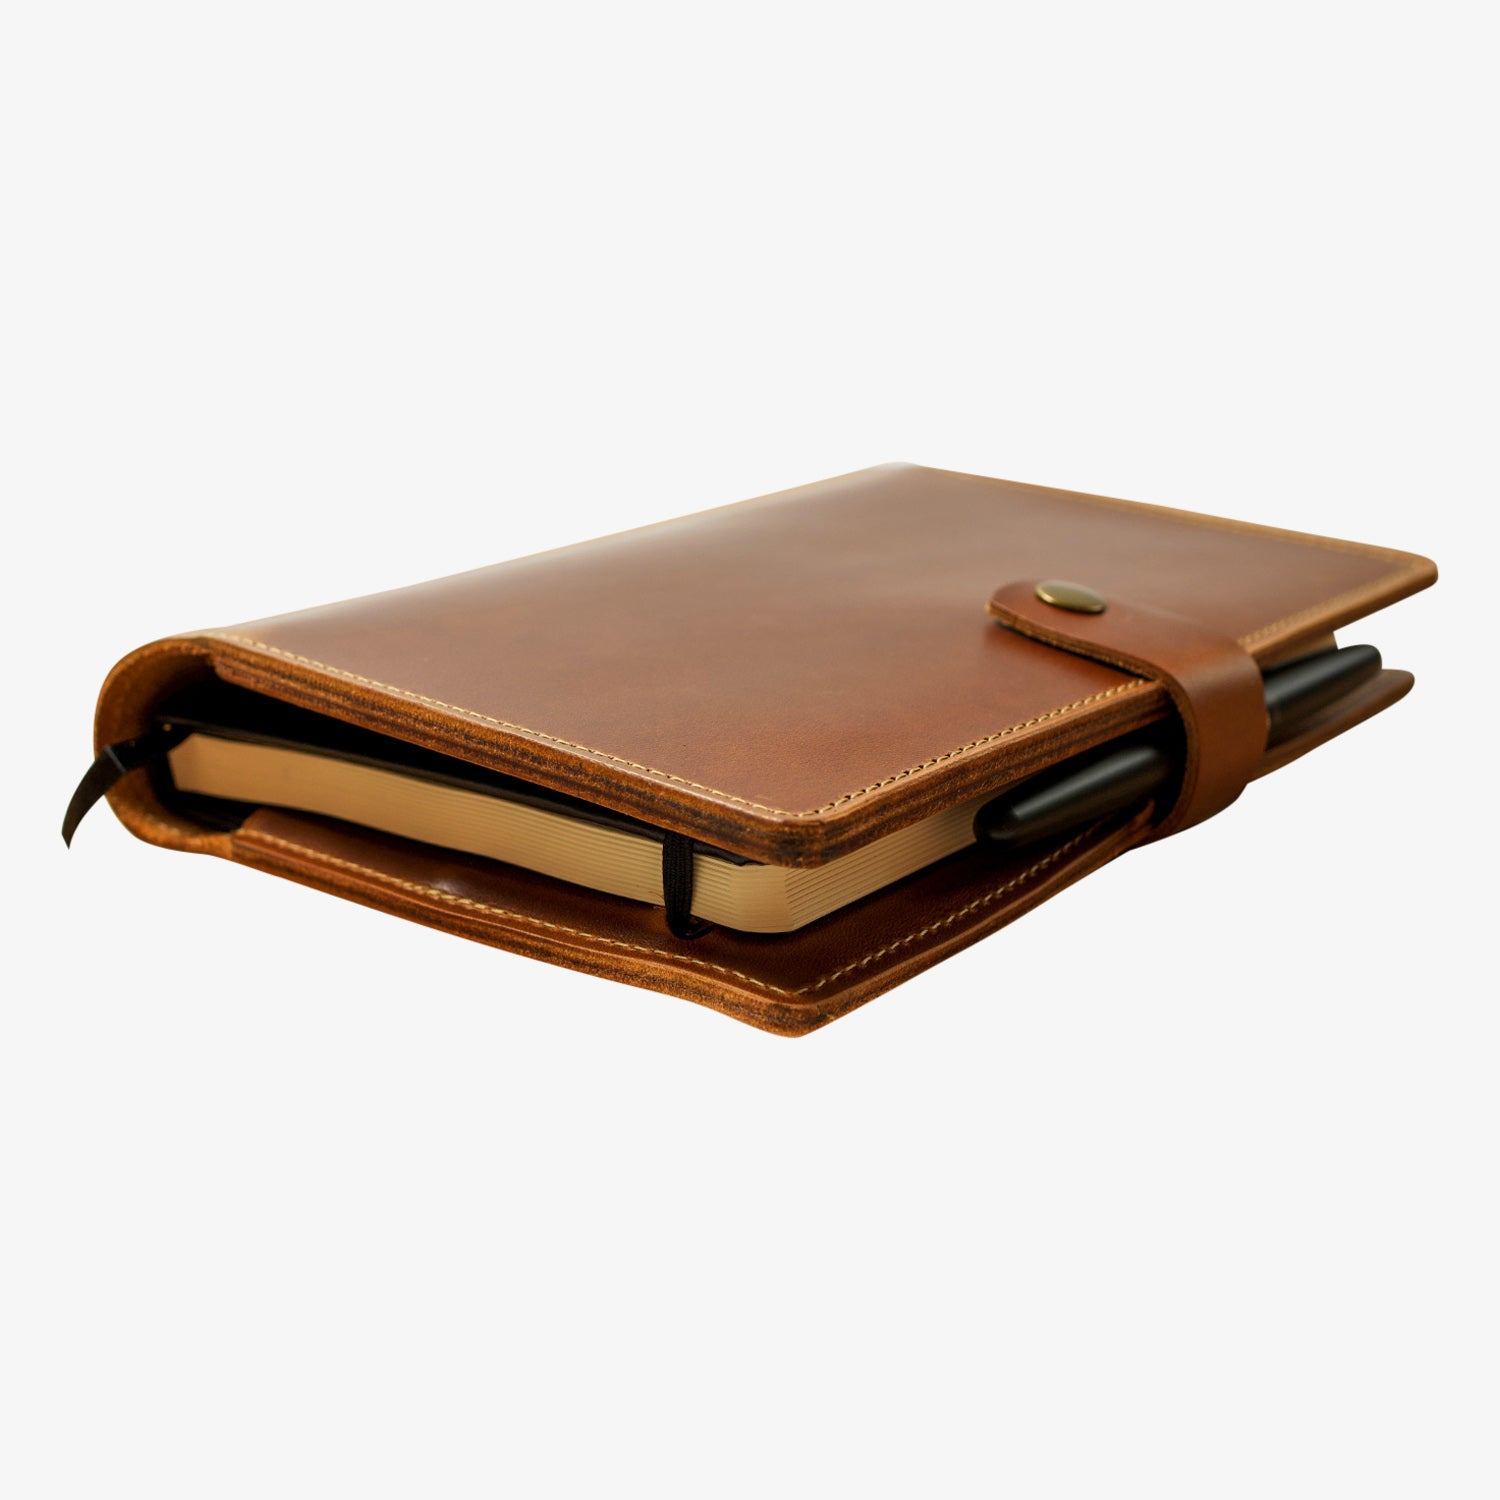 Bainbridge Leather Cover for A5 Notebooks - Moc